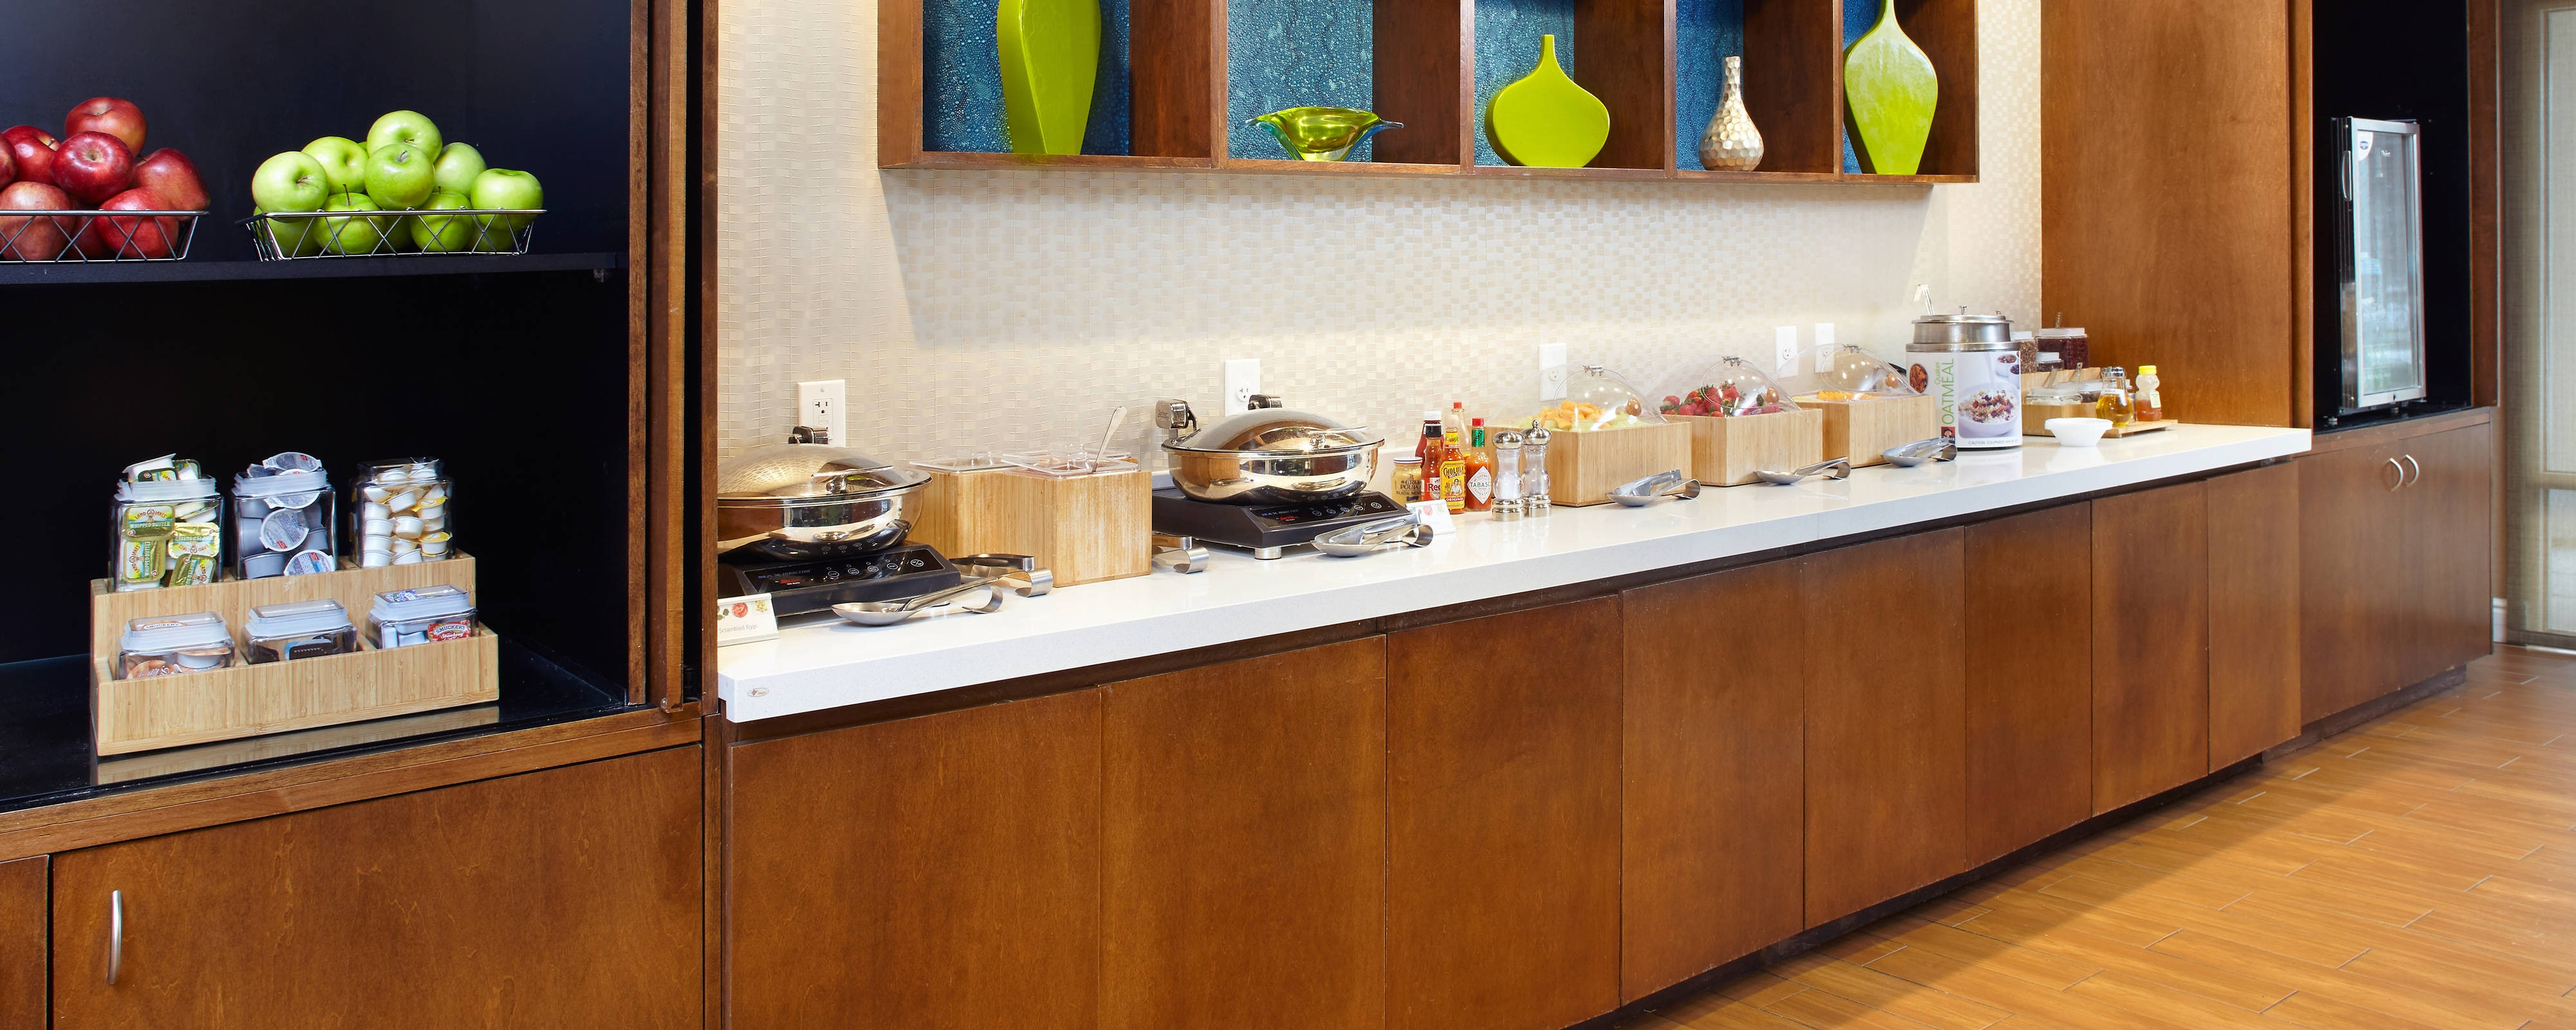 springhill suites airport breakfast buffet